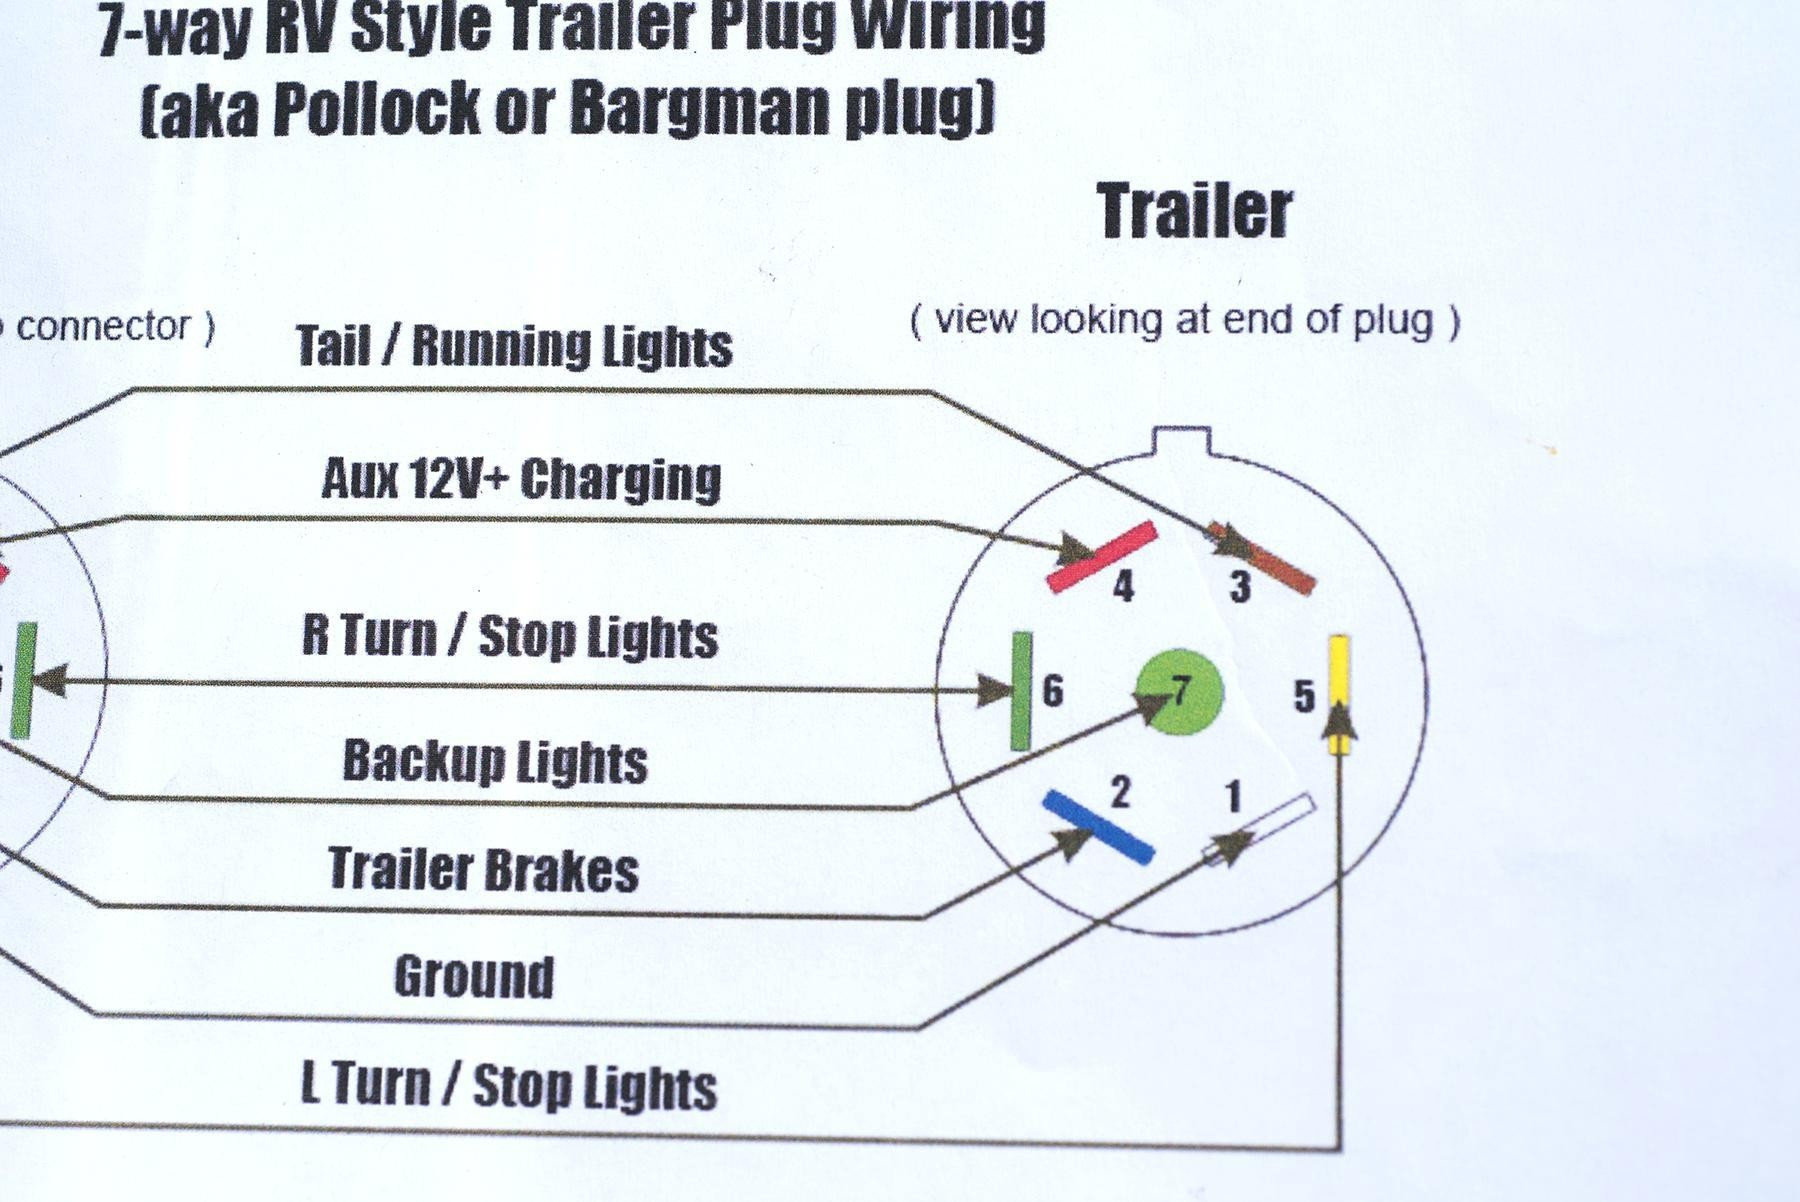 7 Way Plug Wiring Diagram Trailer | Wiring Diagram - 7 Way Rv Wiring Diagram